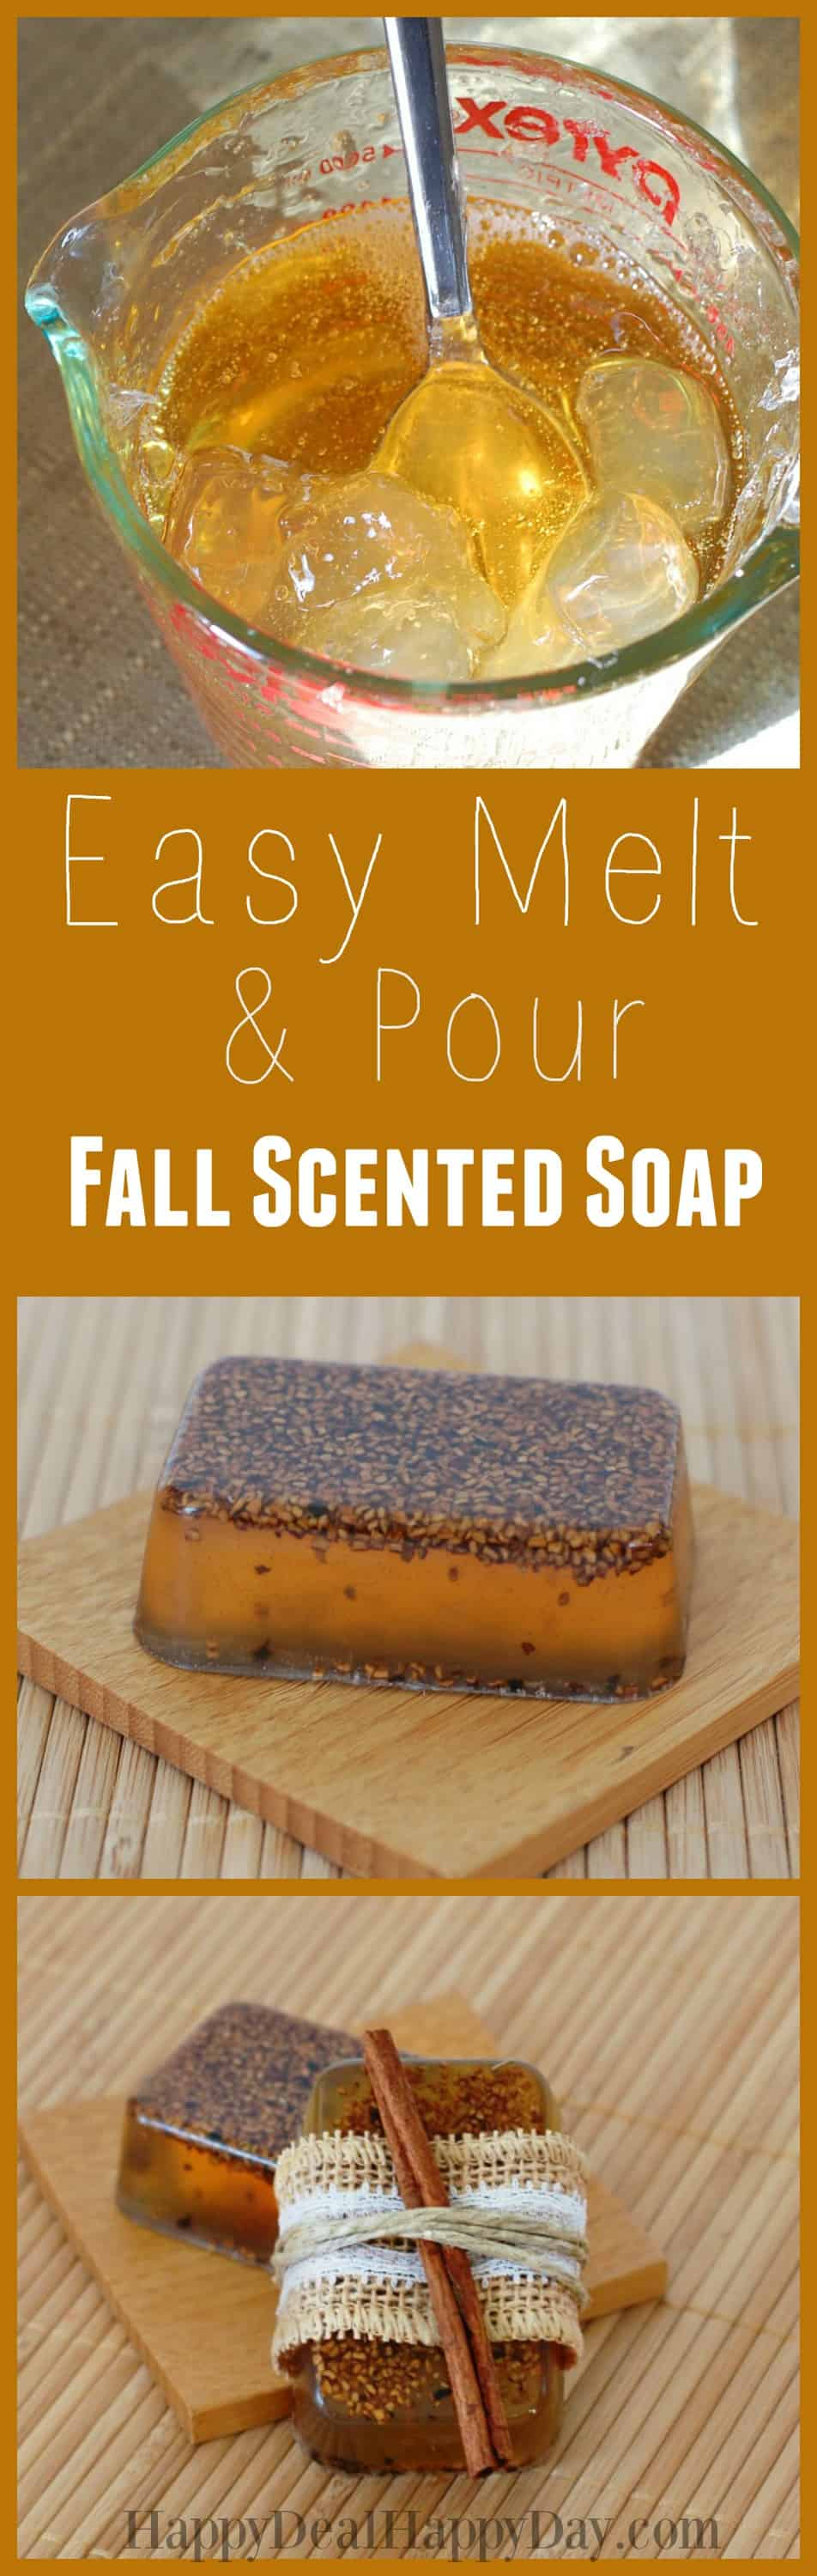 Easy melt and pour falls cented soap